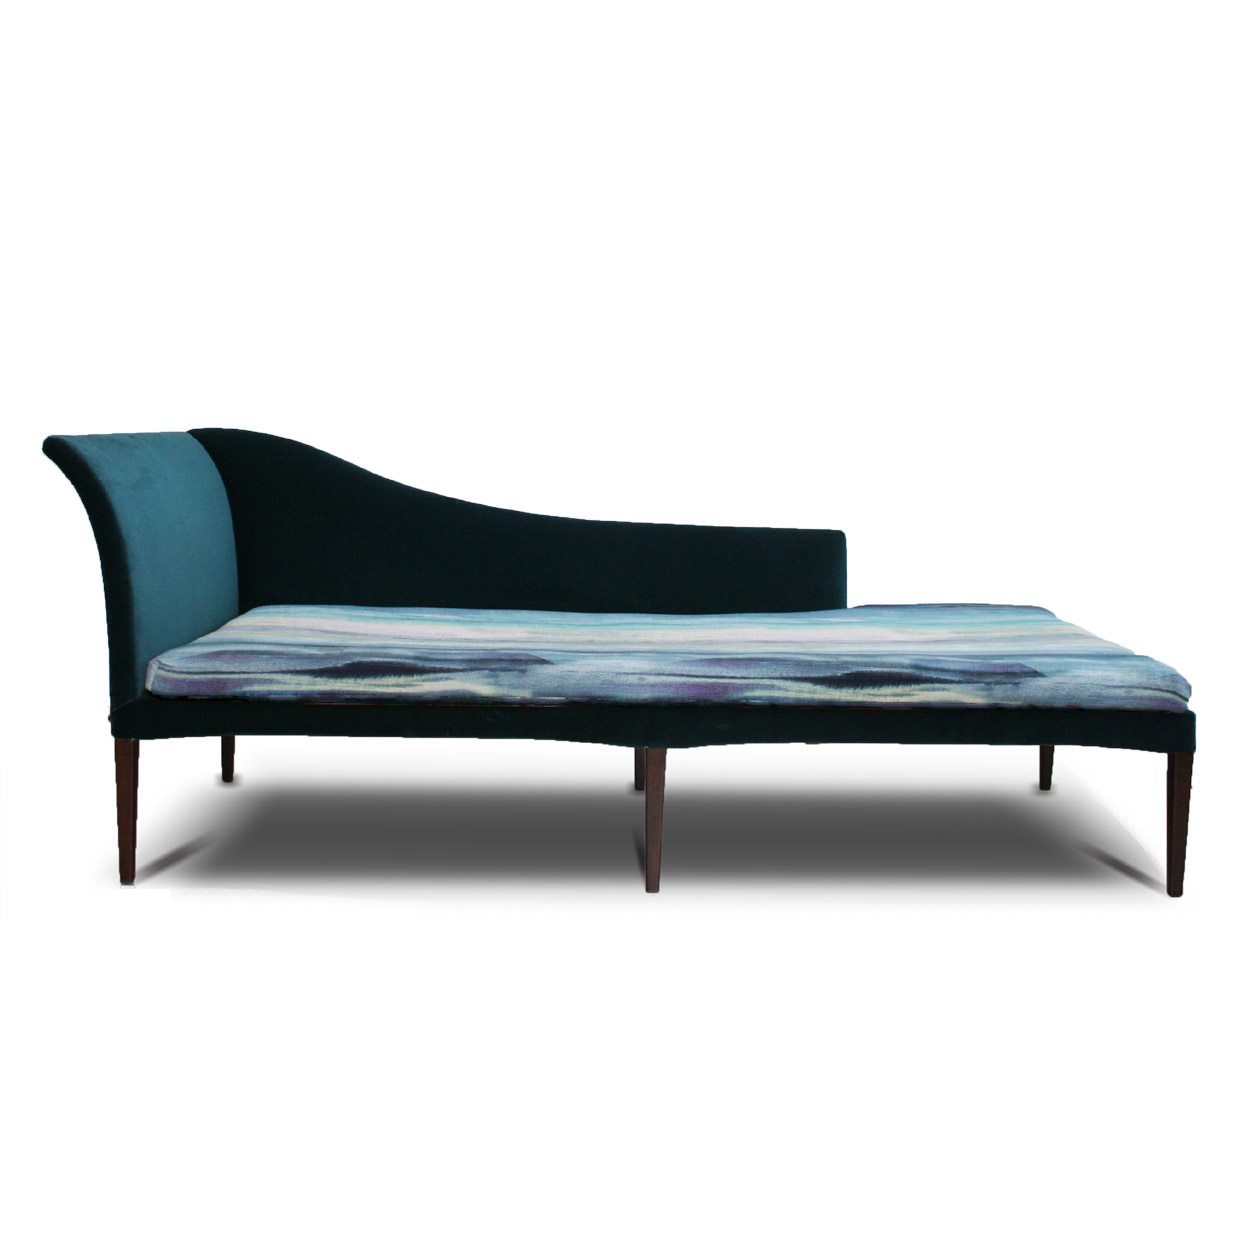 Odense chaise boeme design fabrics cushions furniture for Chaise and a half